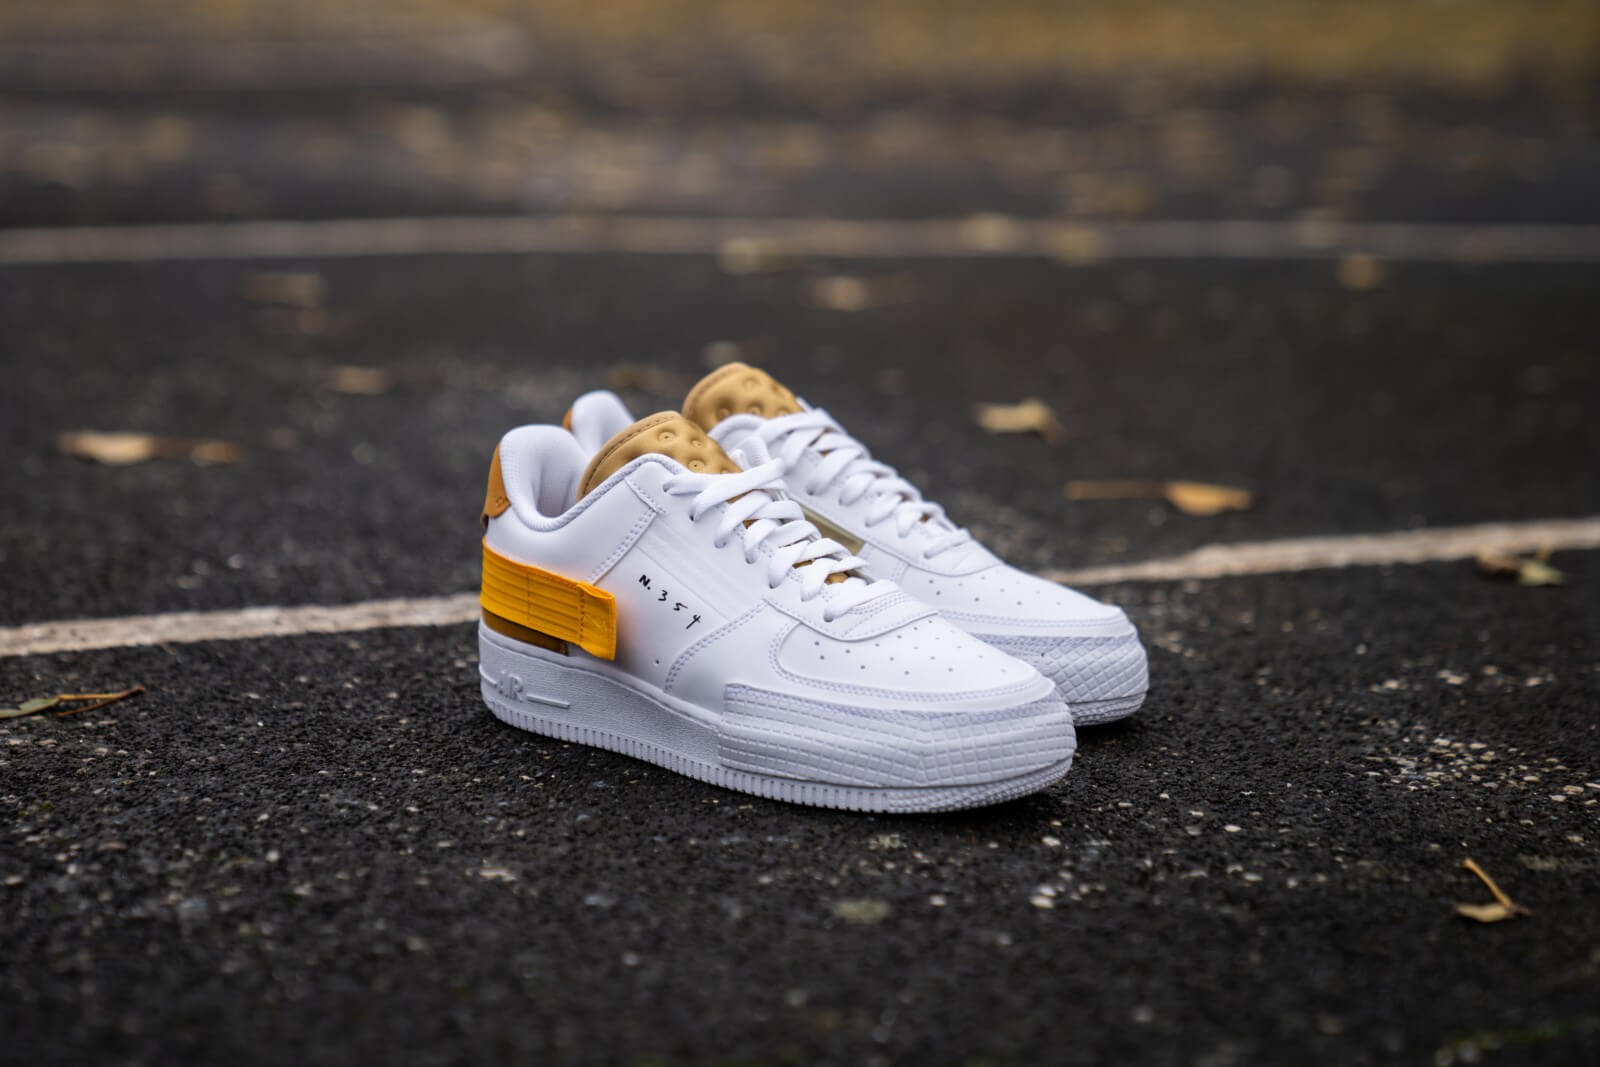 Nike Air Force 1 Type WhiteUniversity Gold AT7859 100